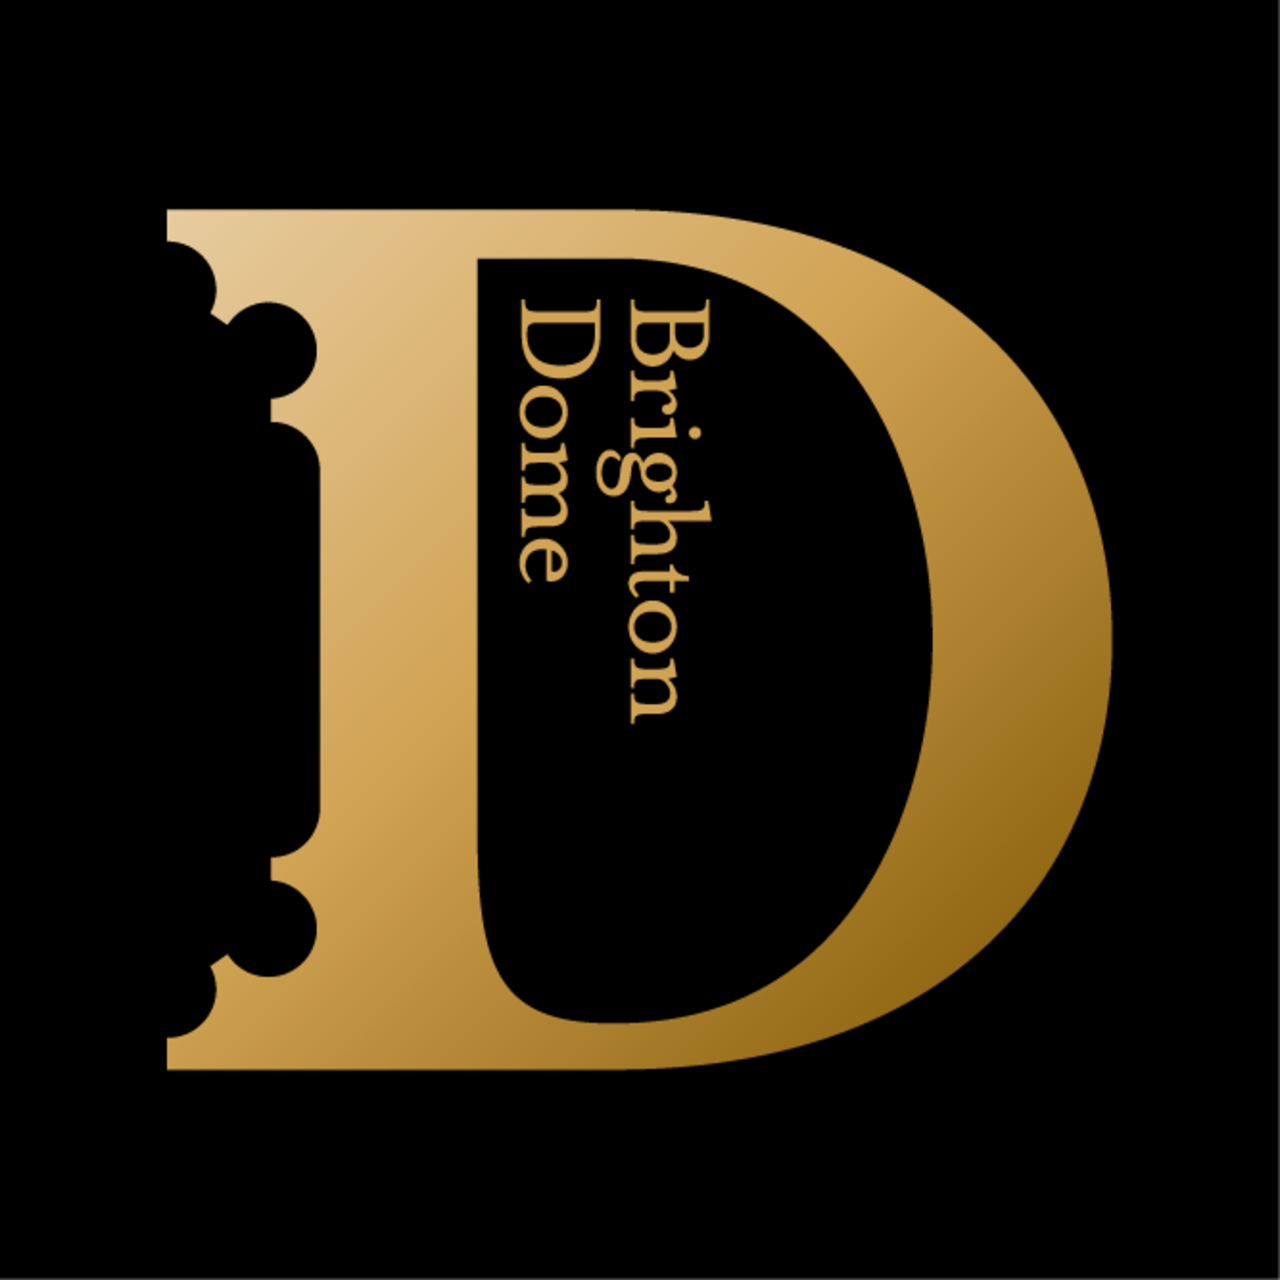 Brighton Dome & Festival Ltd - Arts and Entertainment - Festivals in Brighton